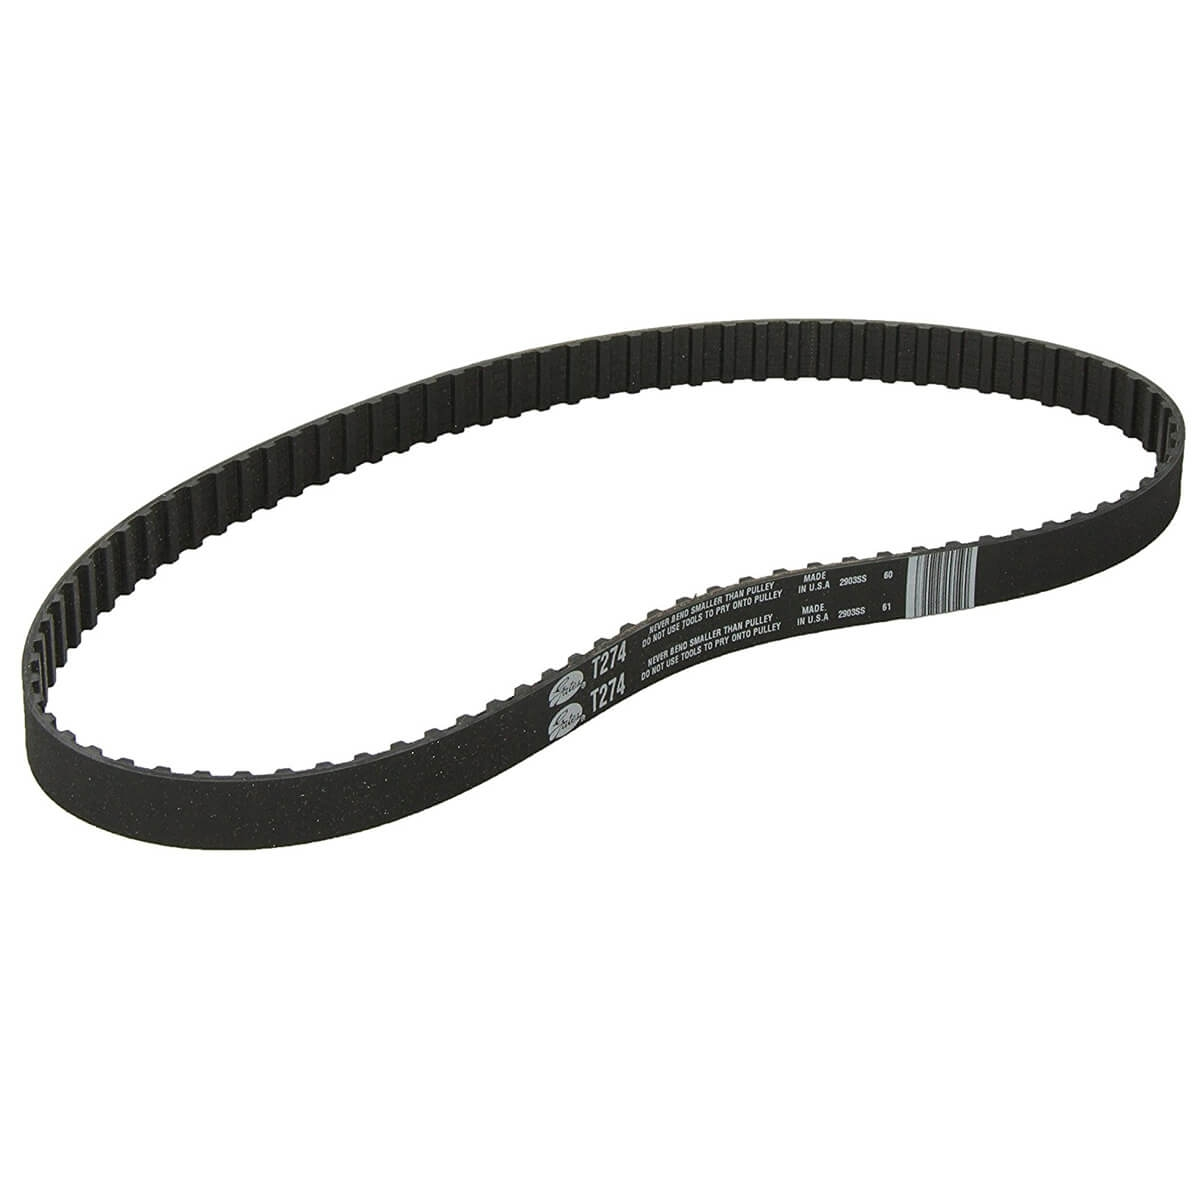 DS DS5 Timing Belt